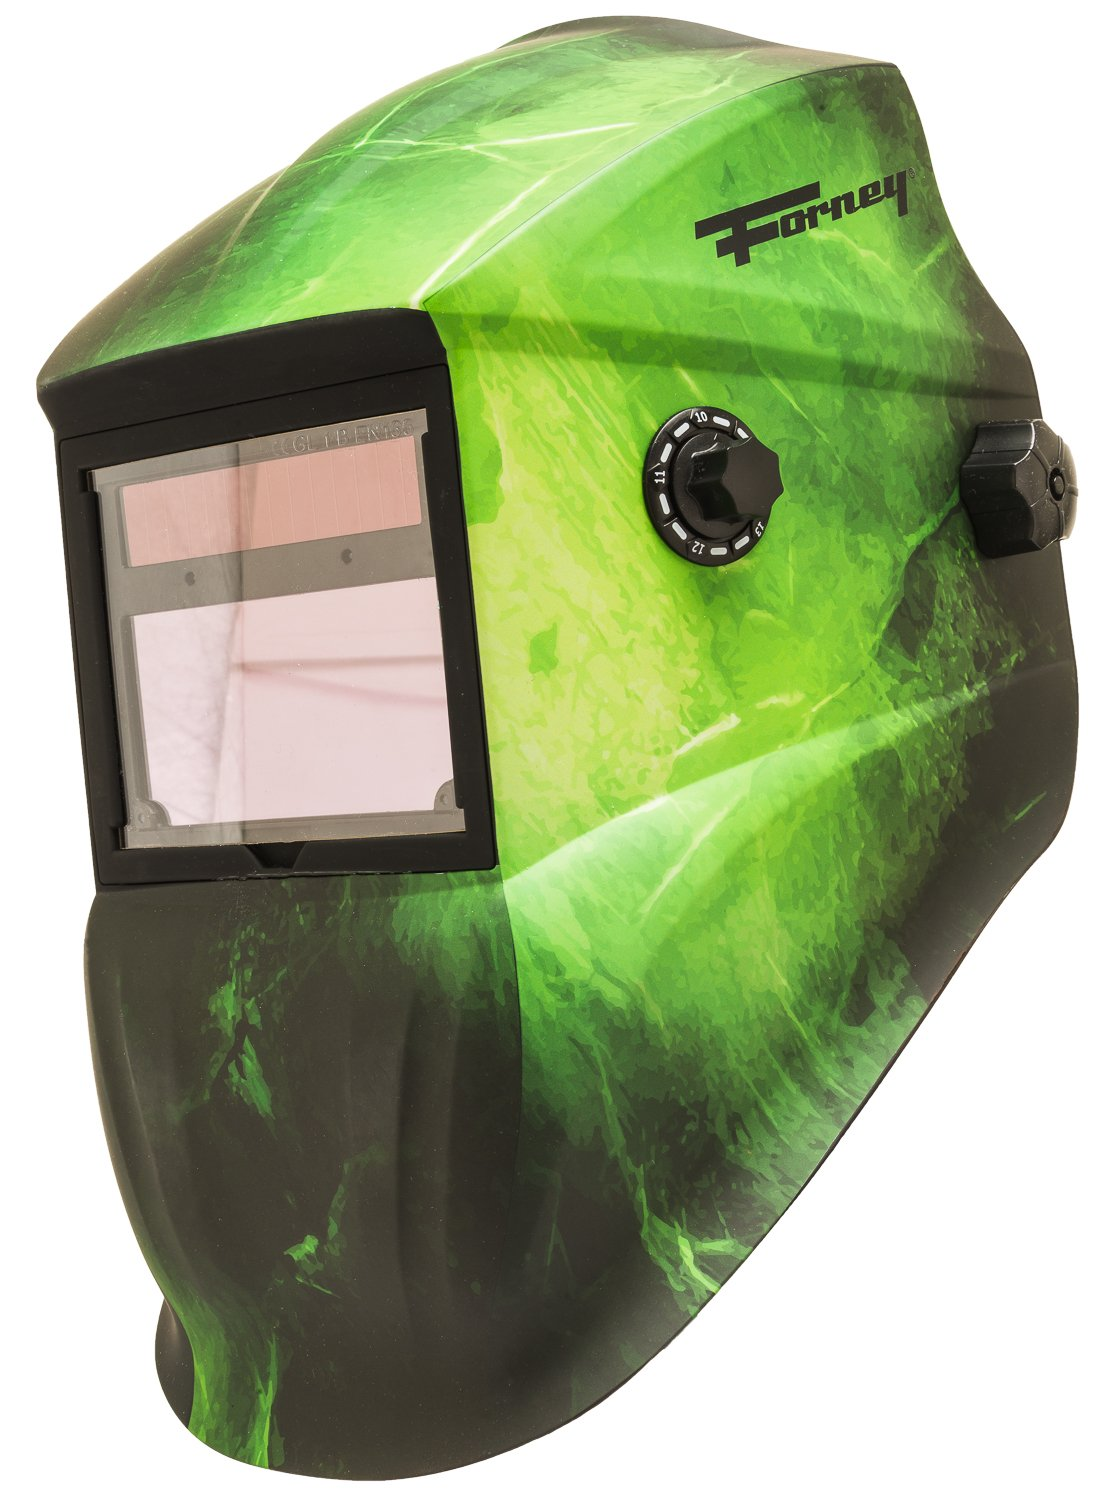 Forney 55707 Advantage Series Edge Auto Darkening Welding Helmet by Forney (Image #3)